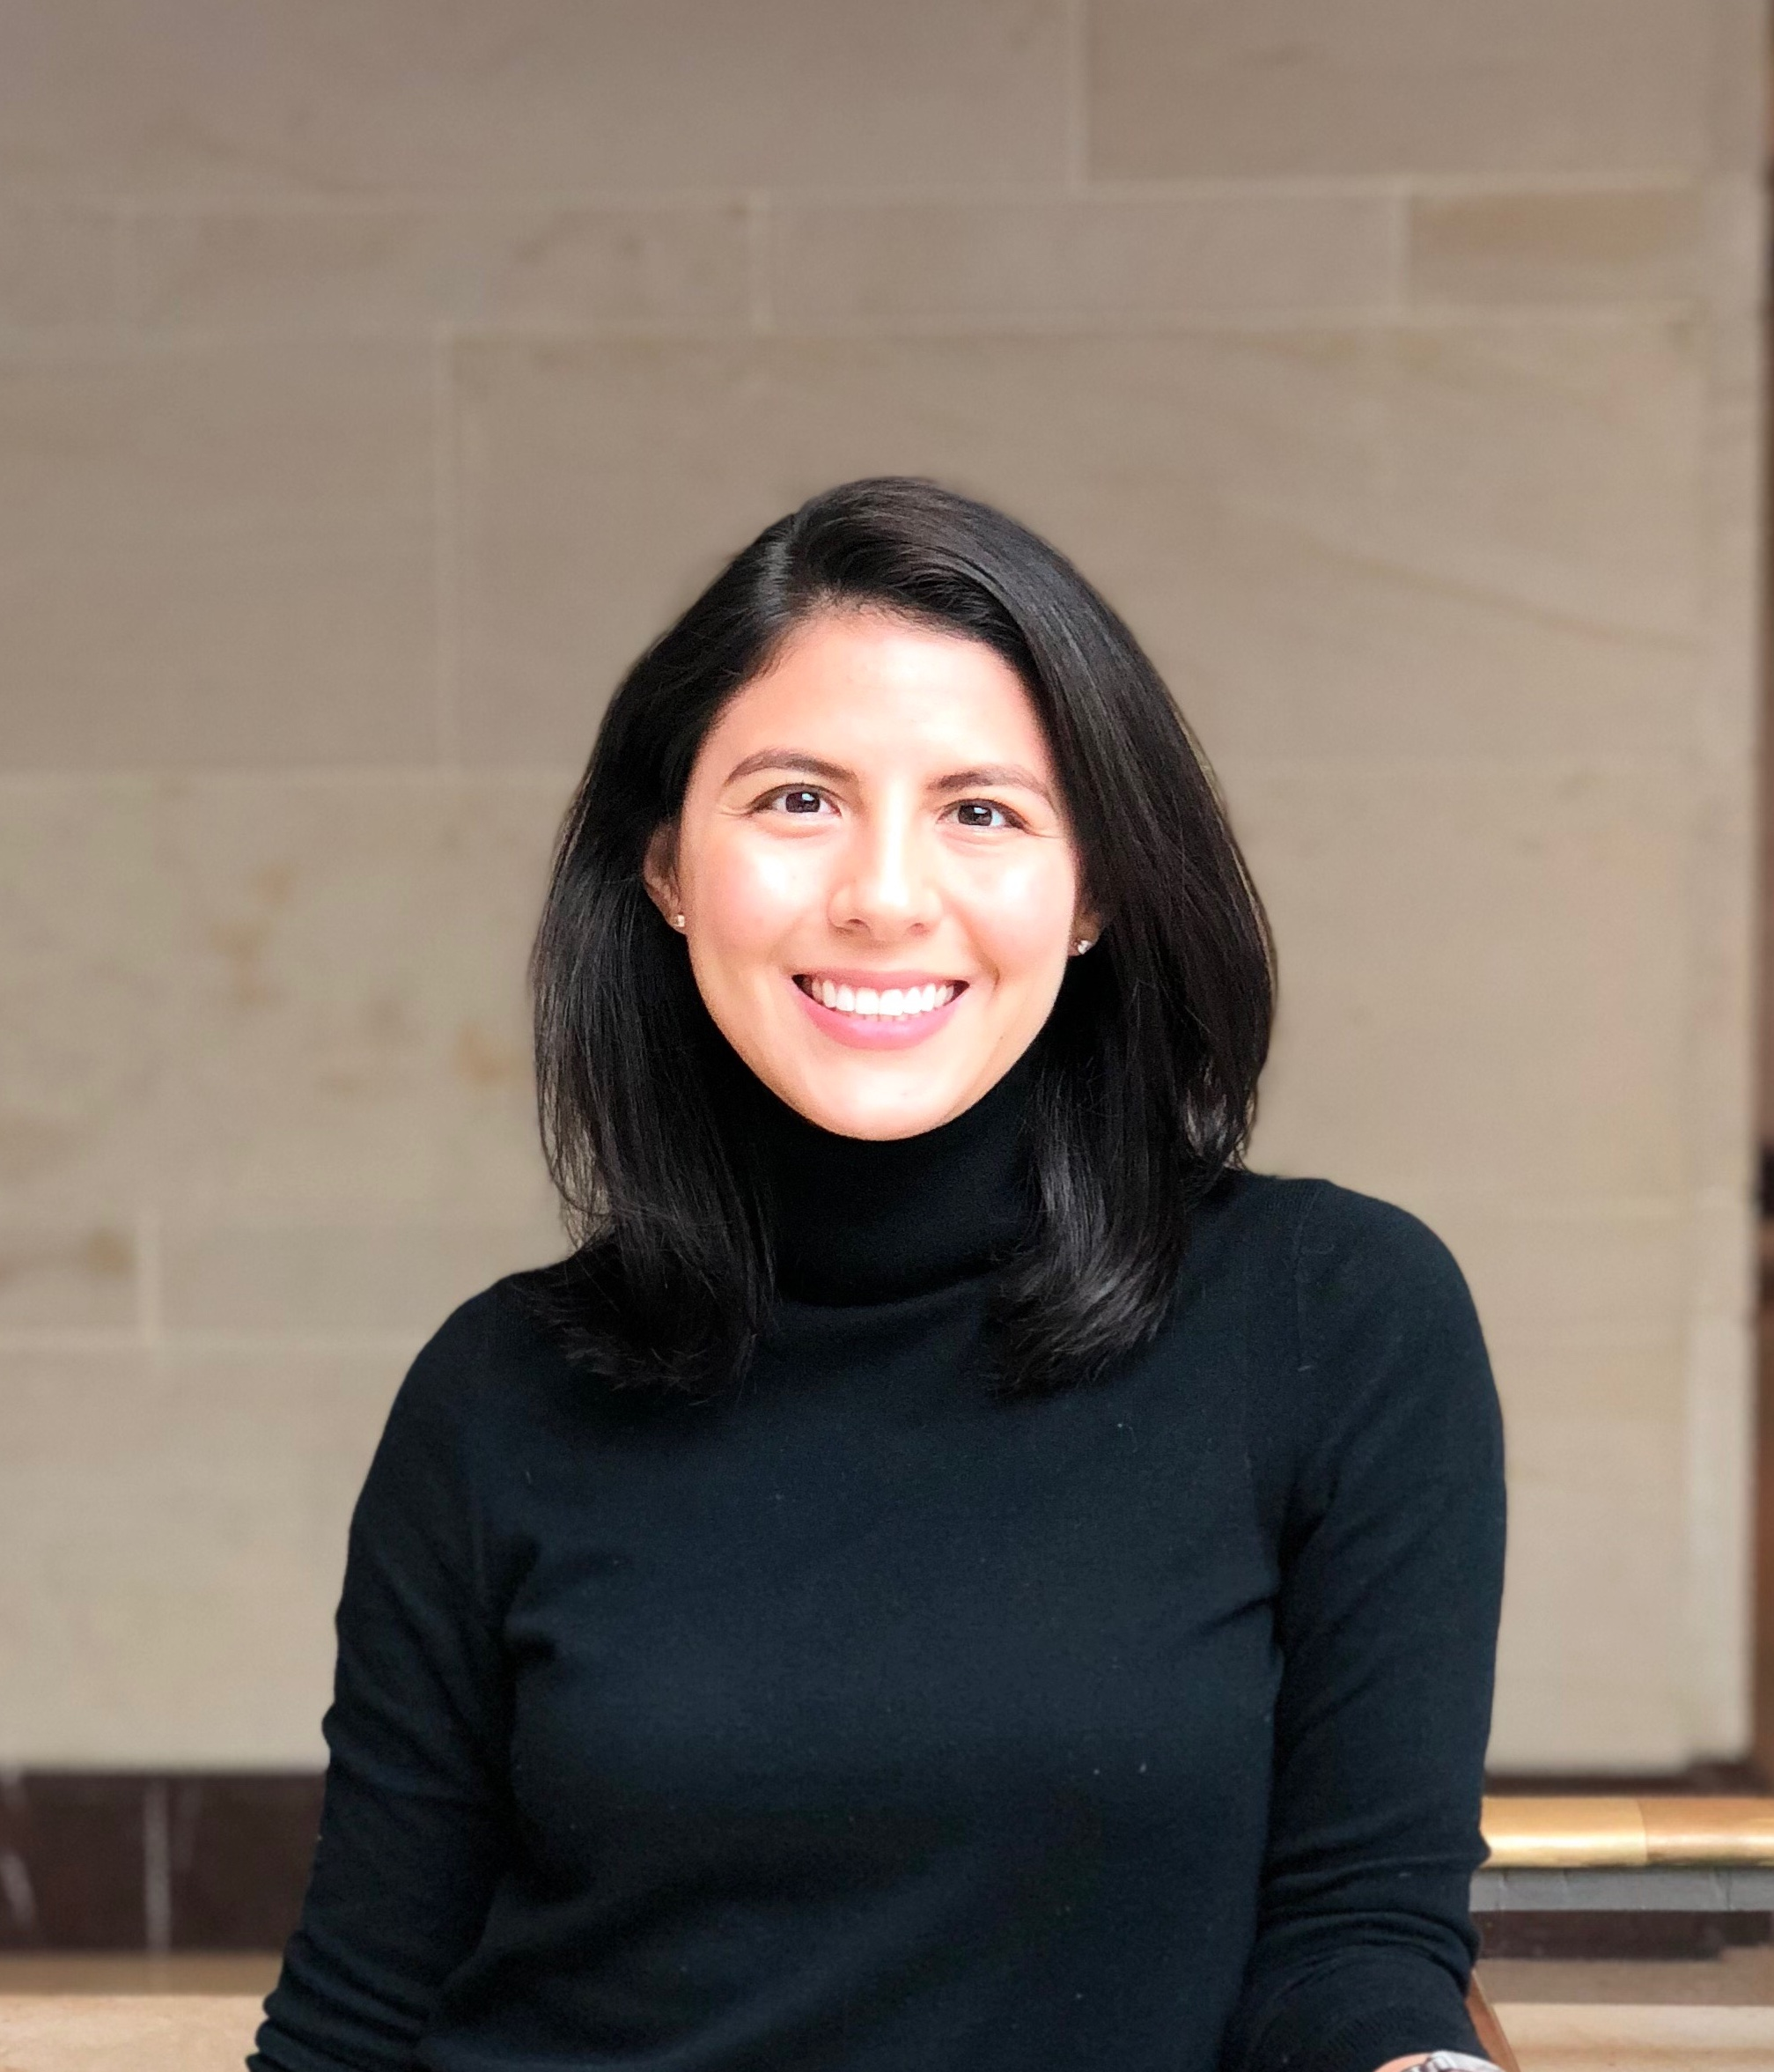 Elizabeth Lopez-SandovalHub II Member - Elizabeth is the Press Secretary for the House Democratic Caucus. Elizabeth is the former Deputy Director for Hispanic Media for Democratic Leader Sen. Chuck Schumer and a Hilary Clinton Alum.